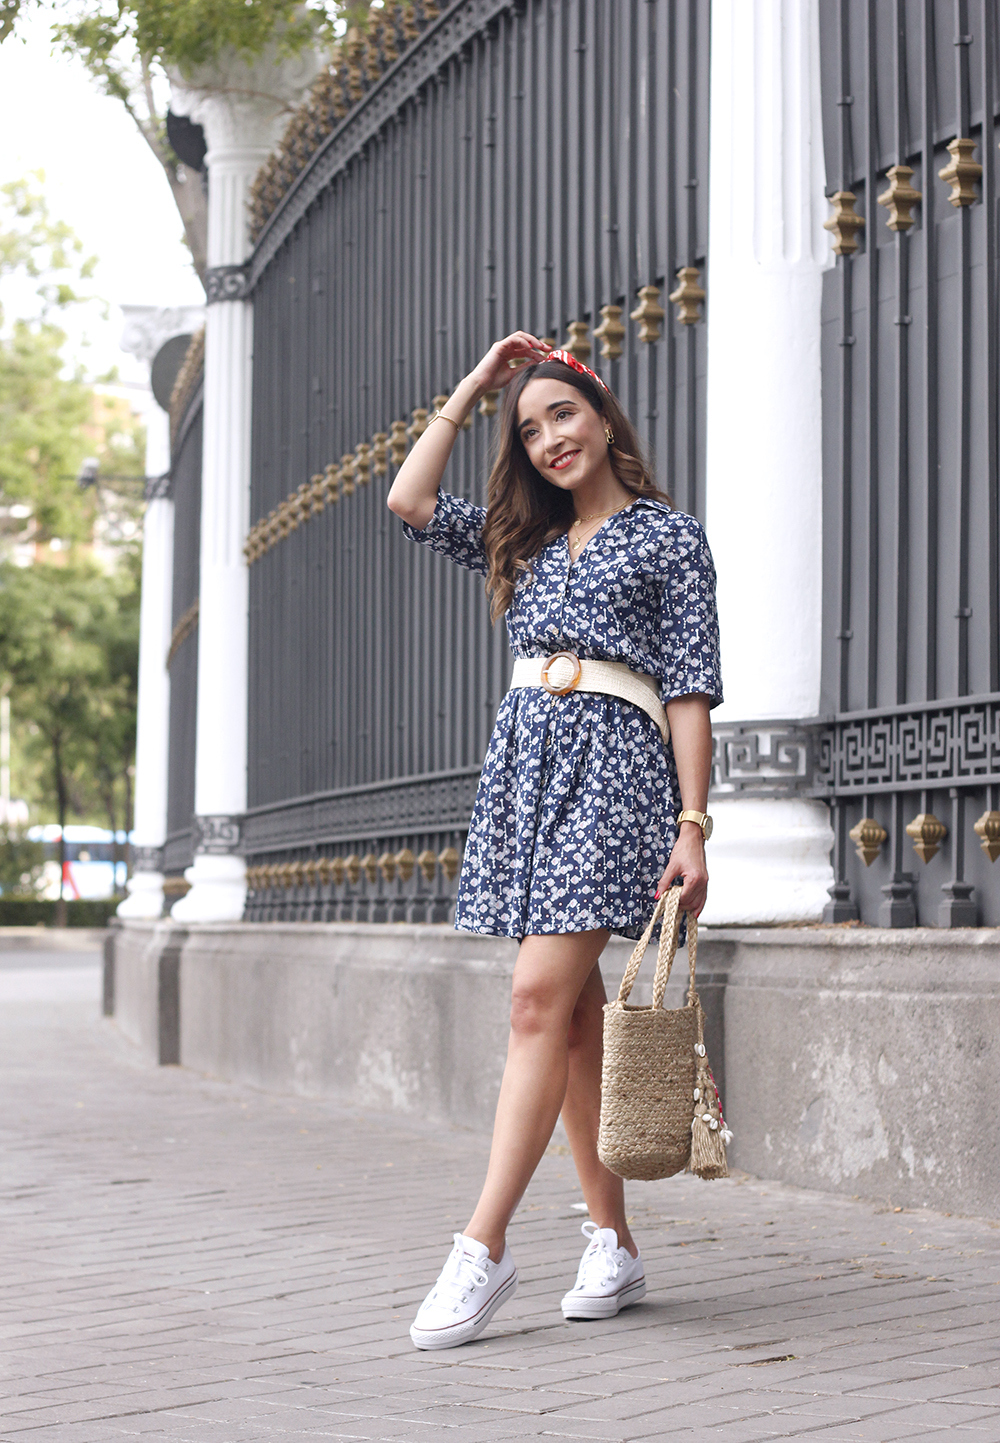 casual printed dress platfrom converse hair scarf street style outfit 201910